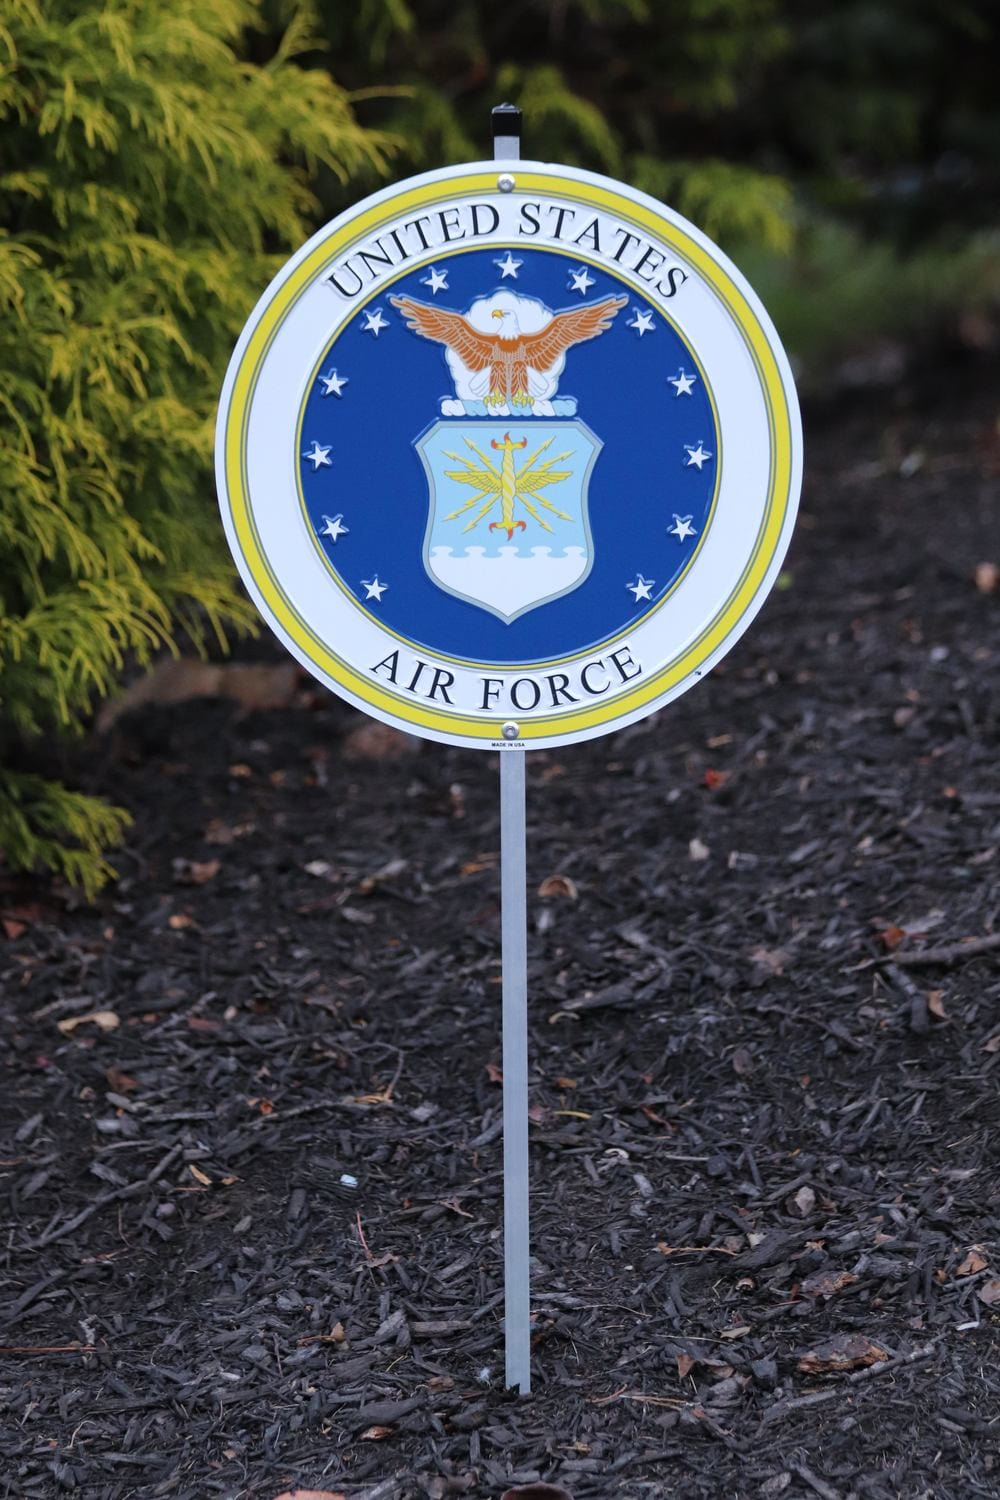 Air Force Yard Sign